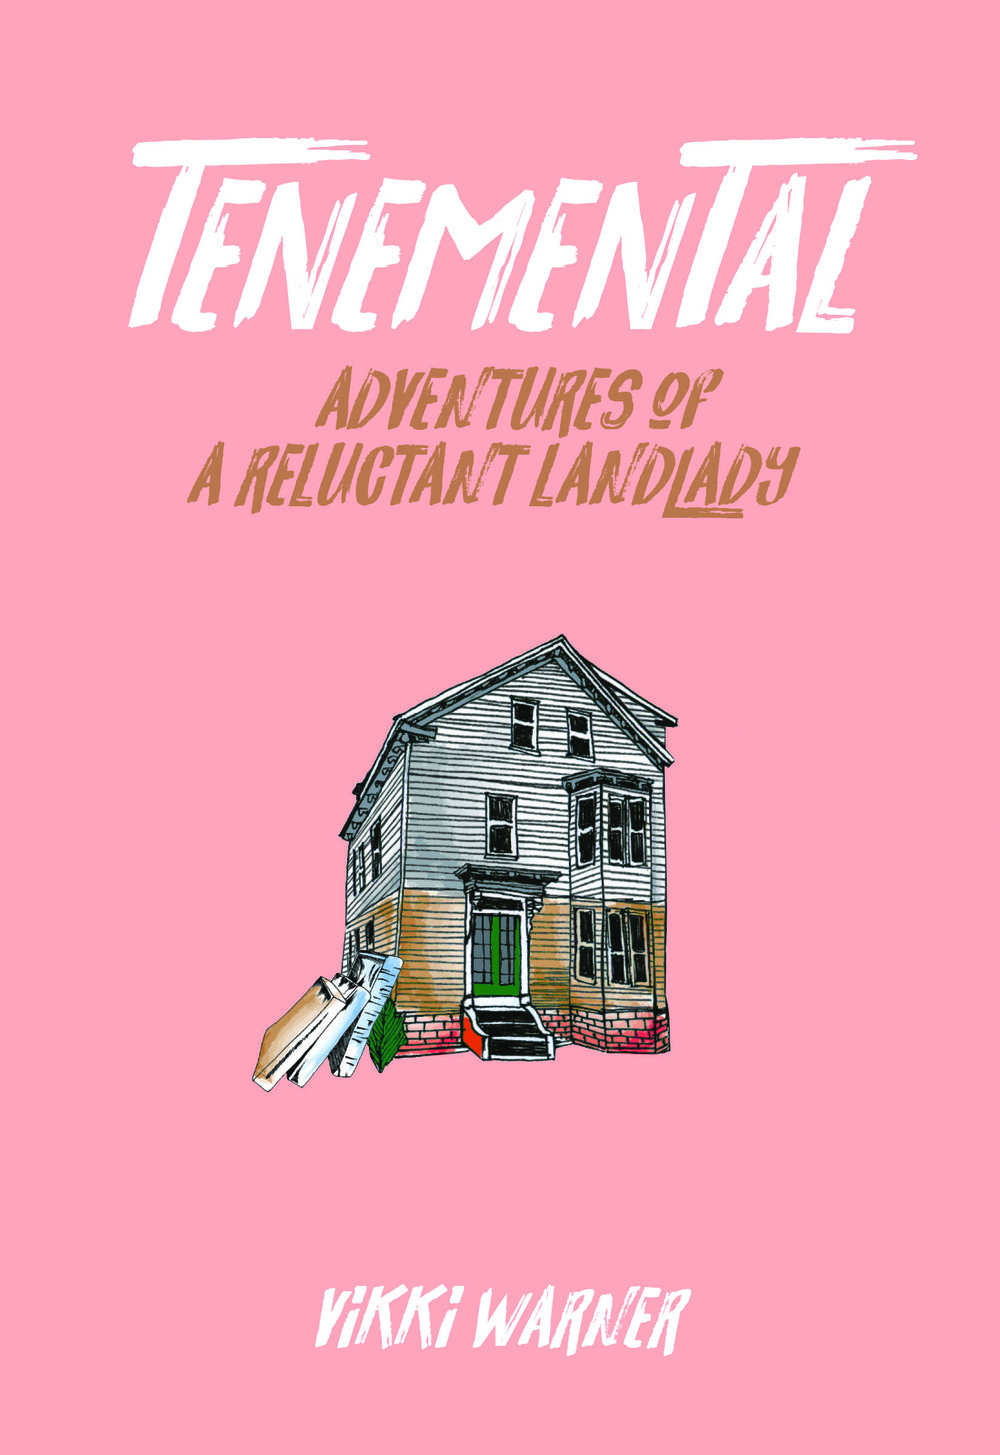 Tenemental book culture lic feminist press adventures of a reluctant landlady malvernweather Gallery